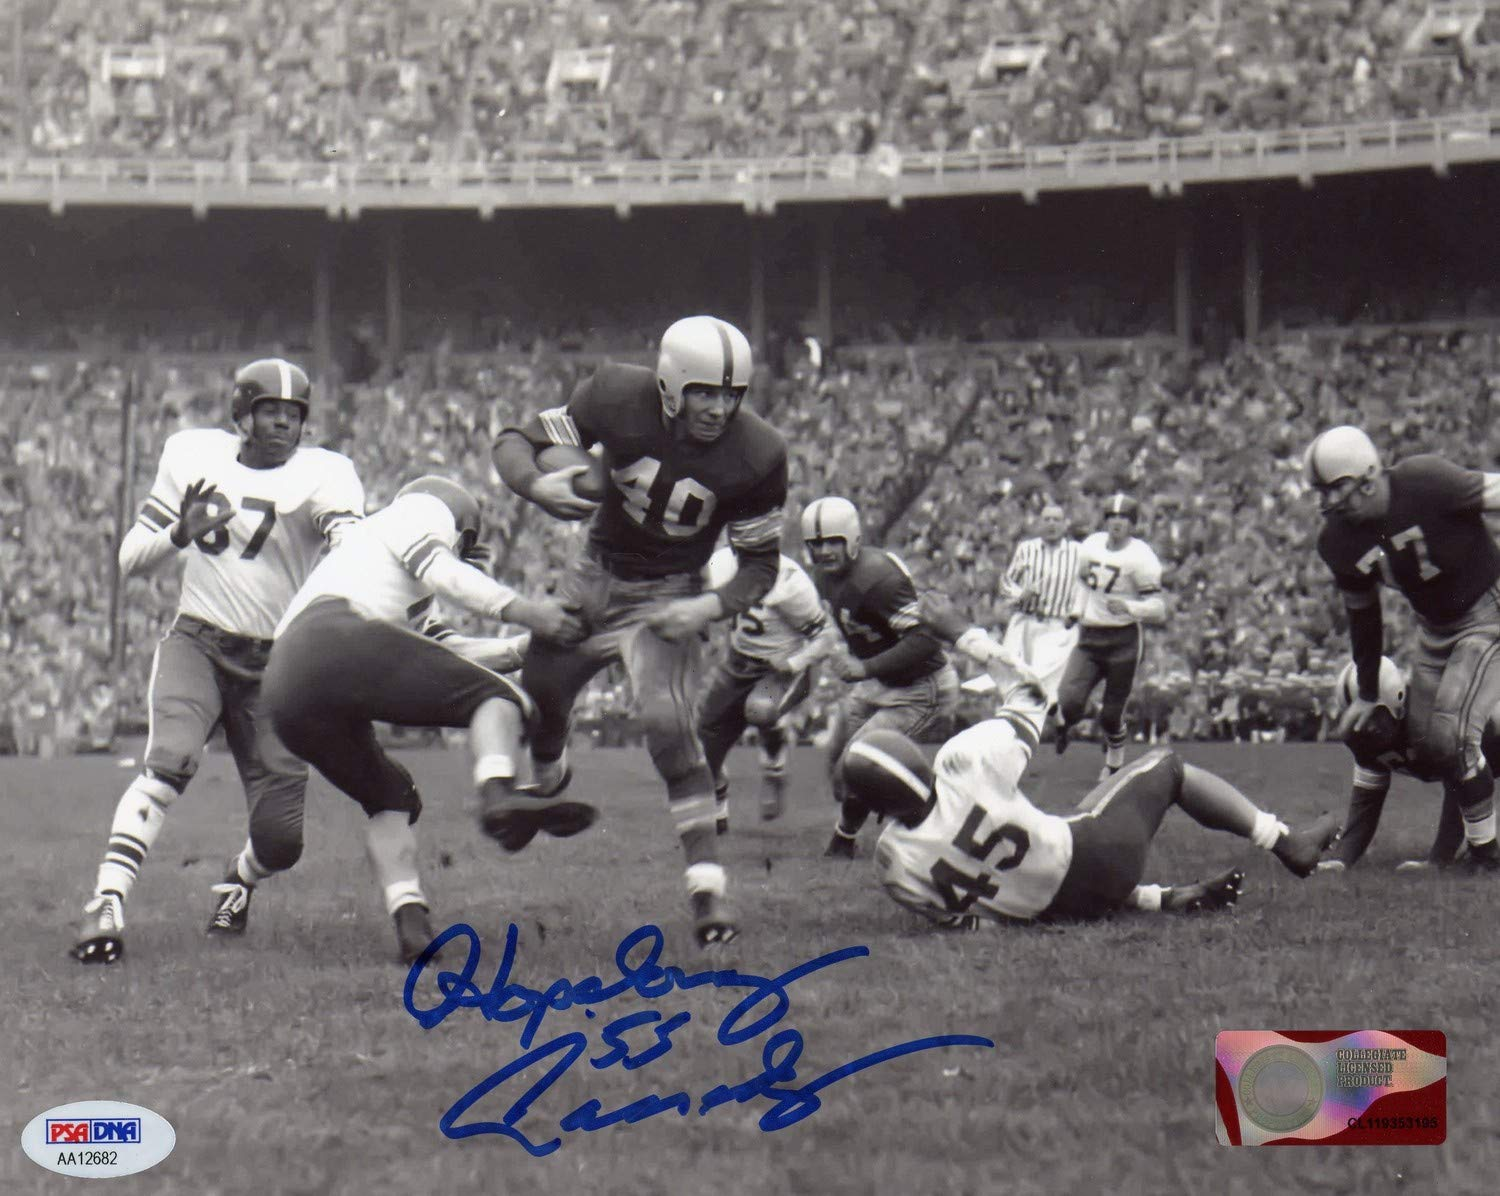 Hopalong Cassady Ohio State Buckeyes Autographed Signed 8x10 Photo PSA/DNA Authentic